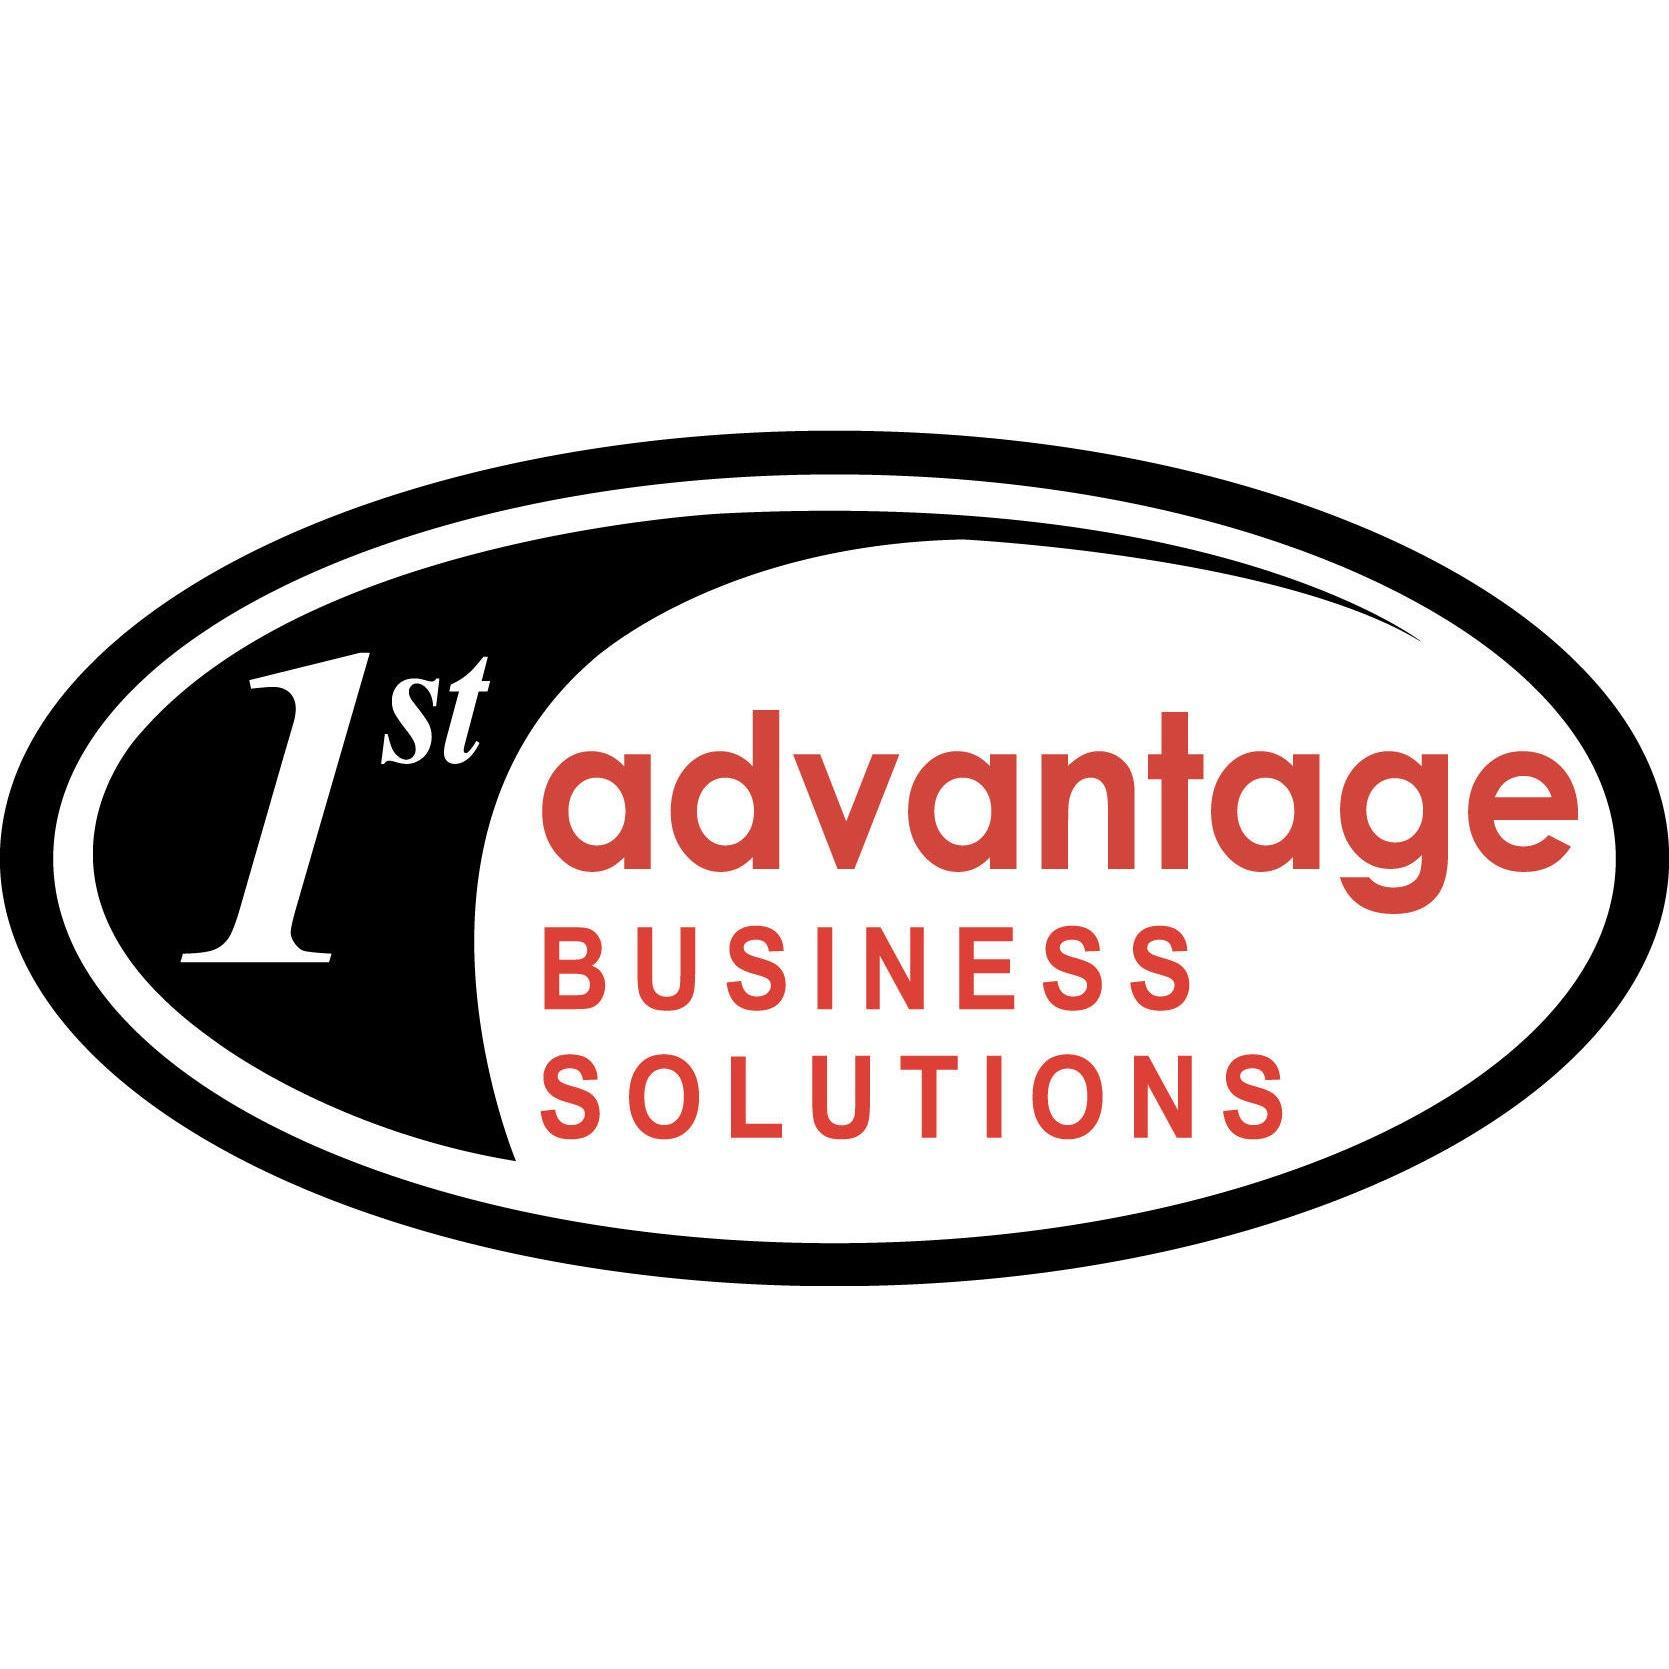 1st Advantage Business Solutions - Downey, CA 90241 - (562)381-2025 | ShowMeLocal.com